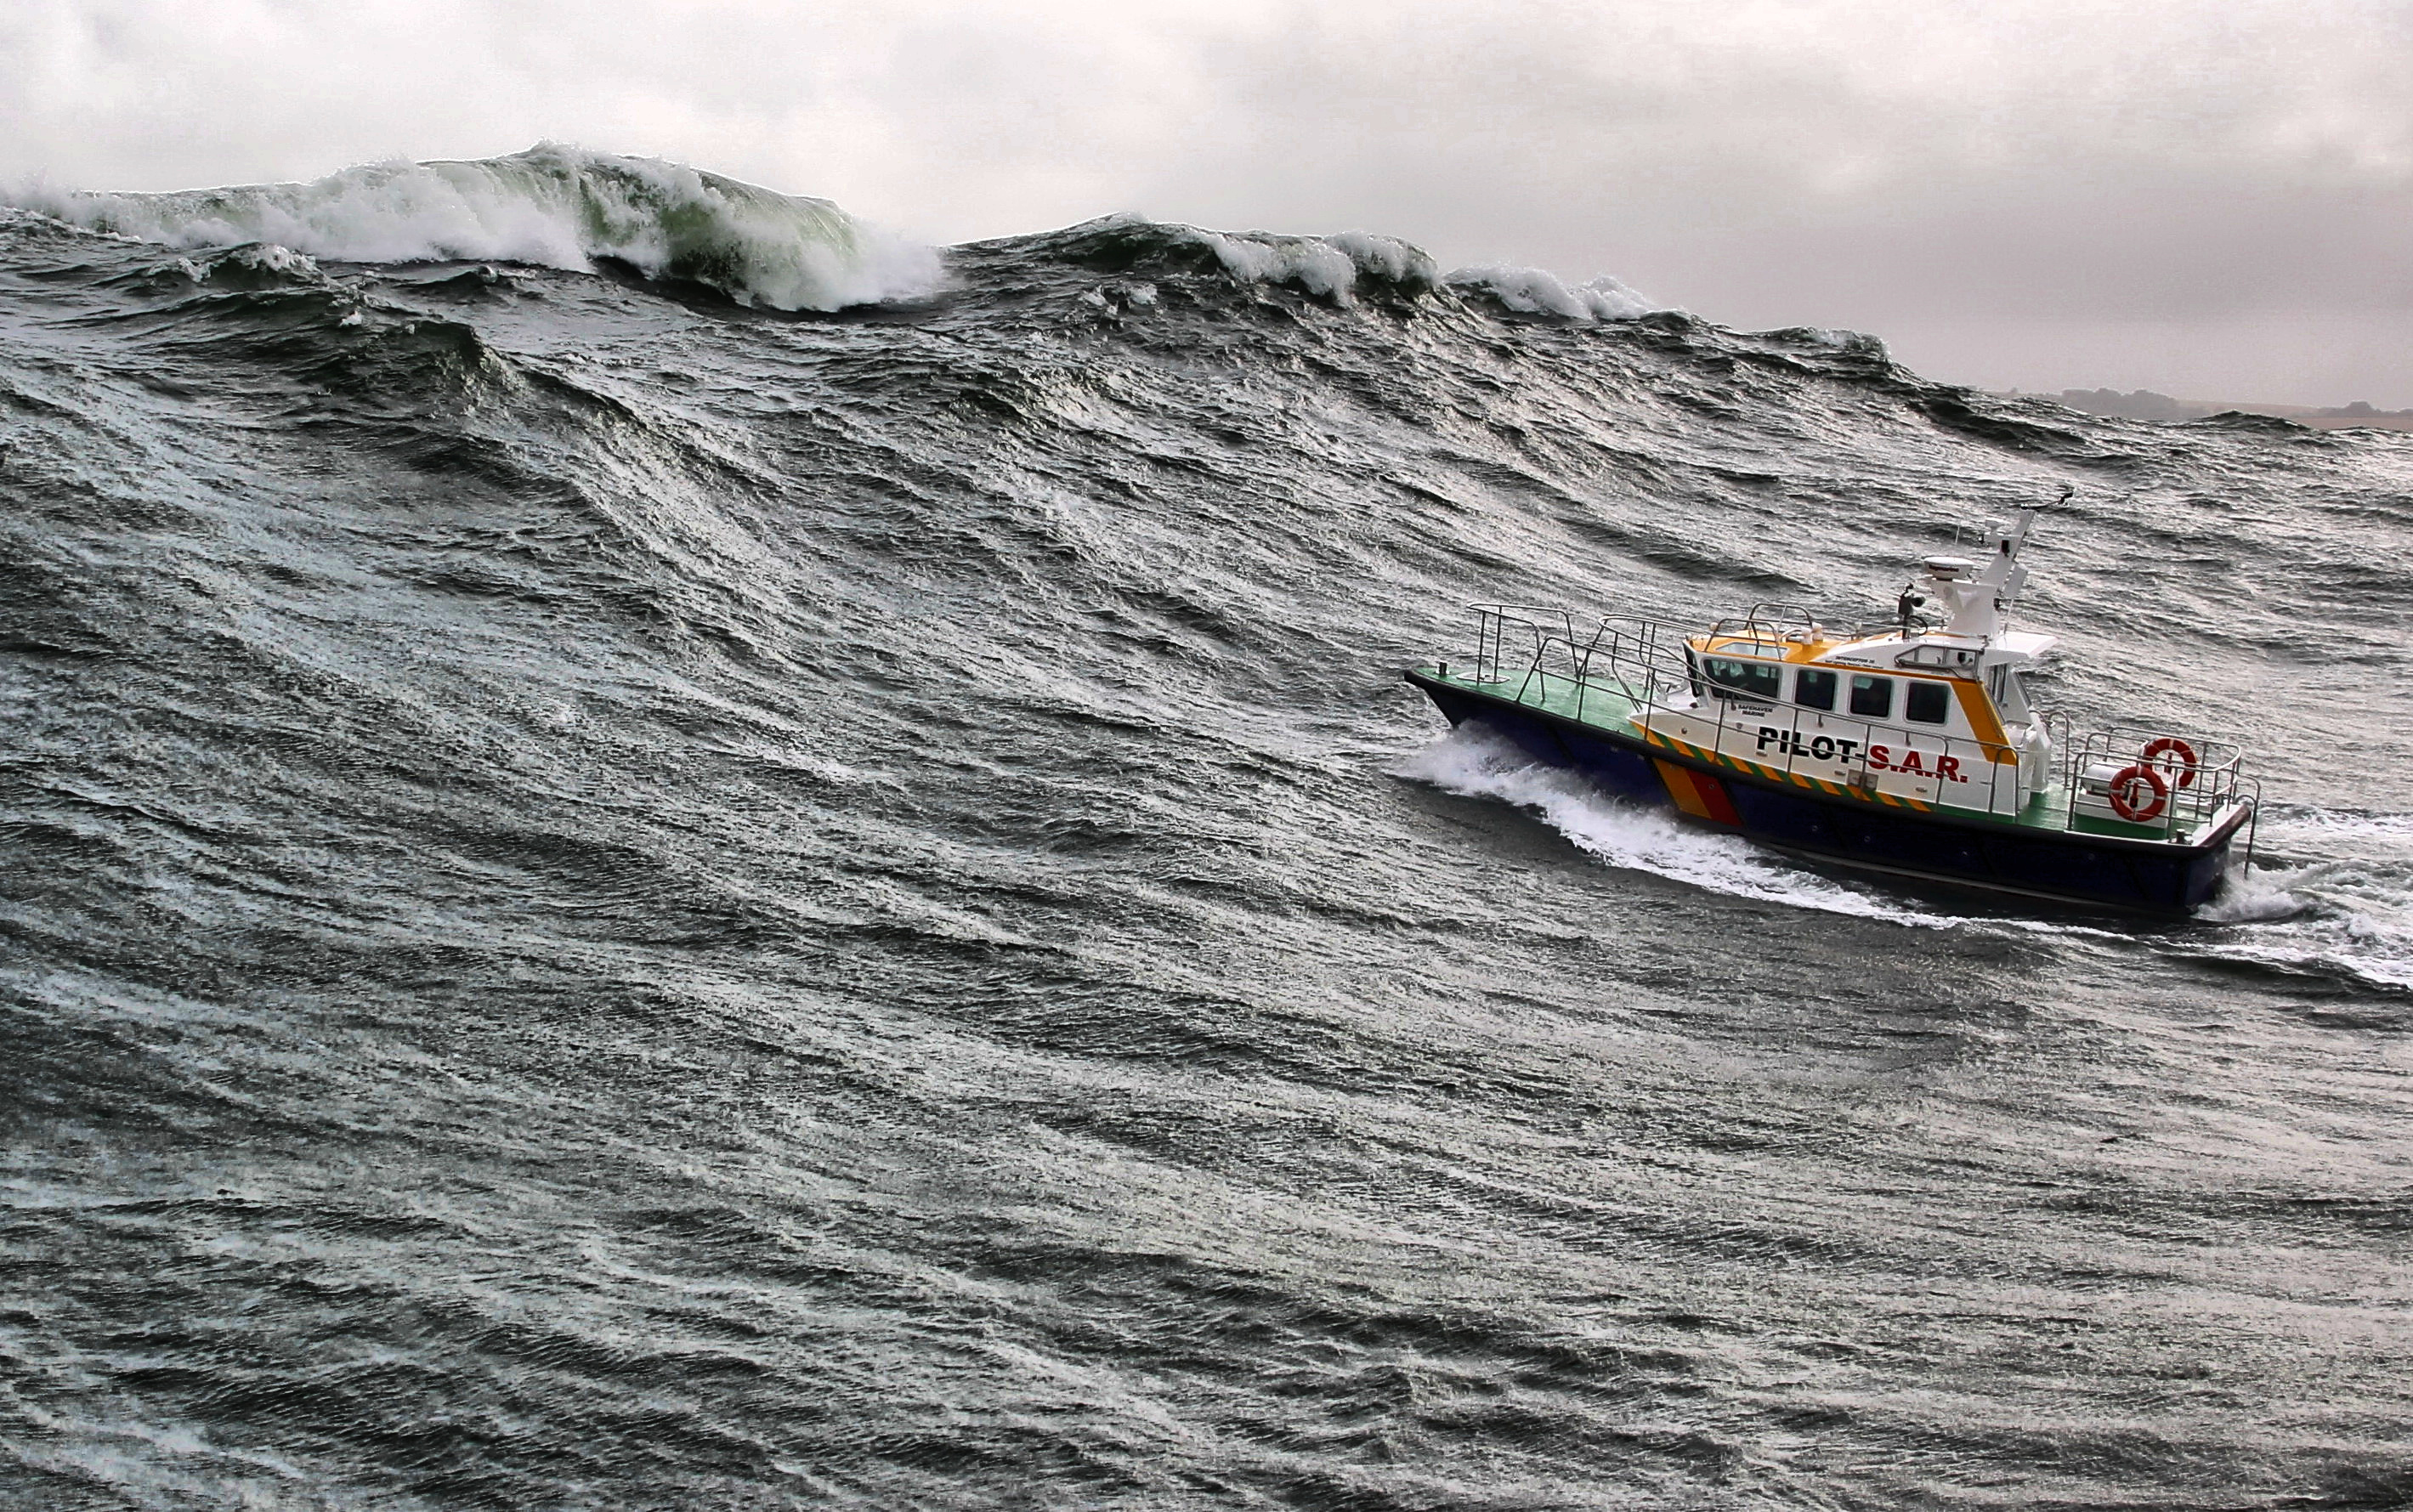 Huge waves at the entrance, Pilot 38